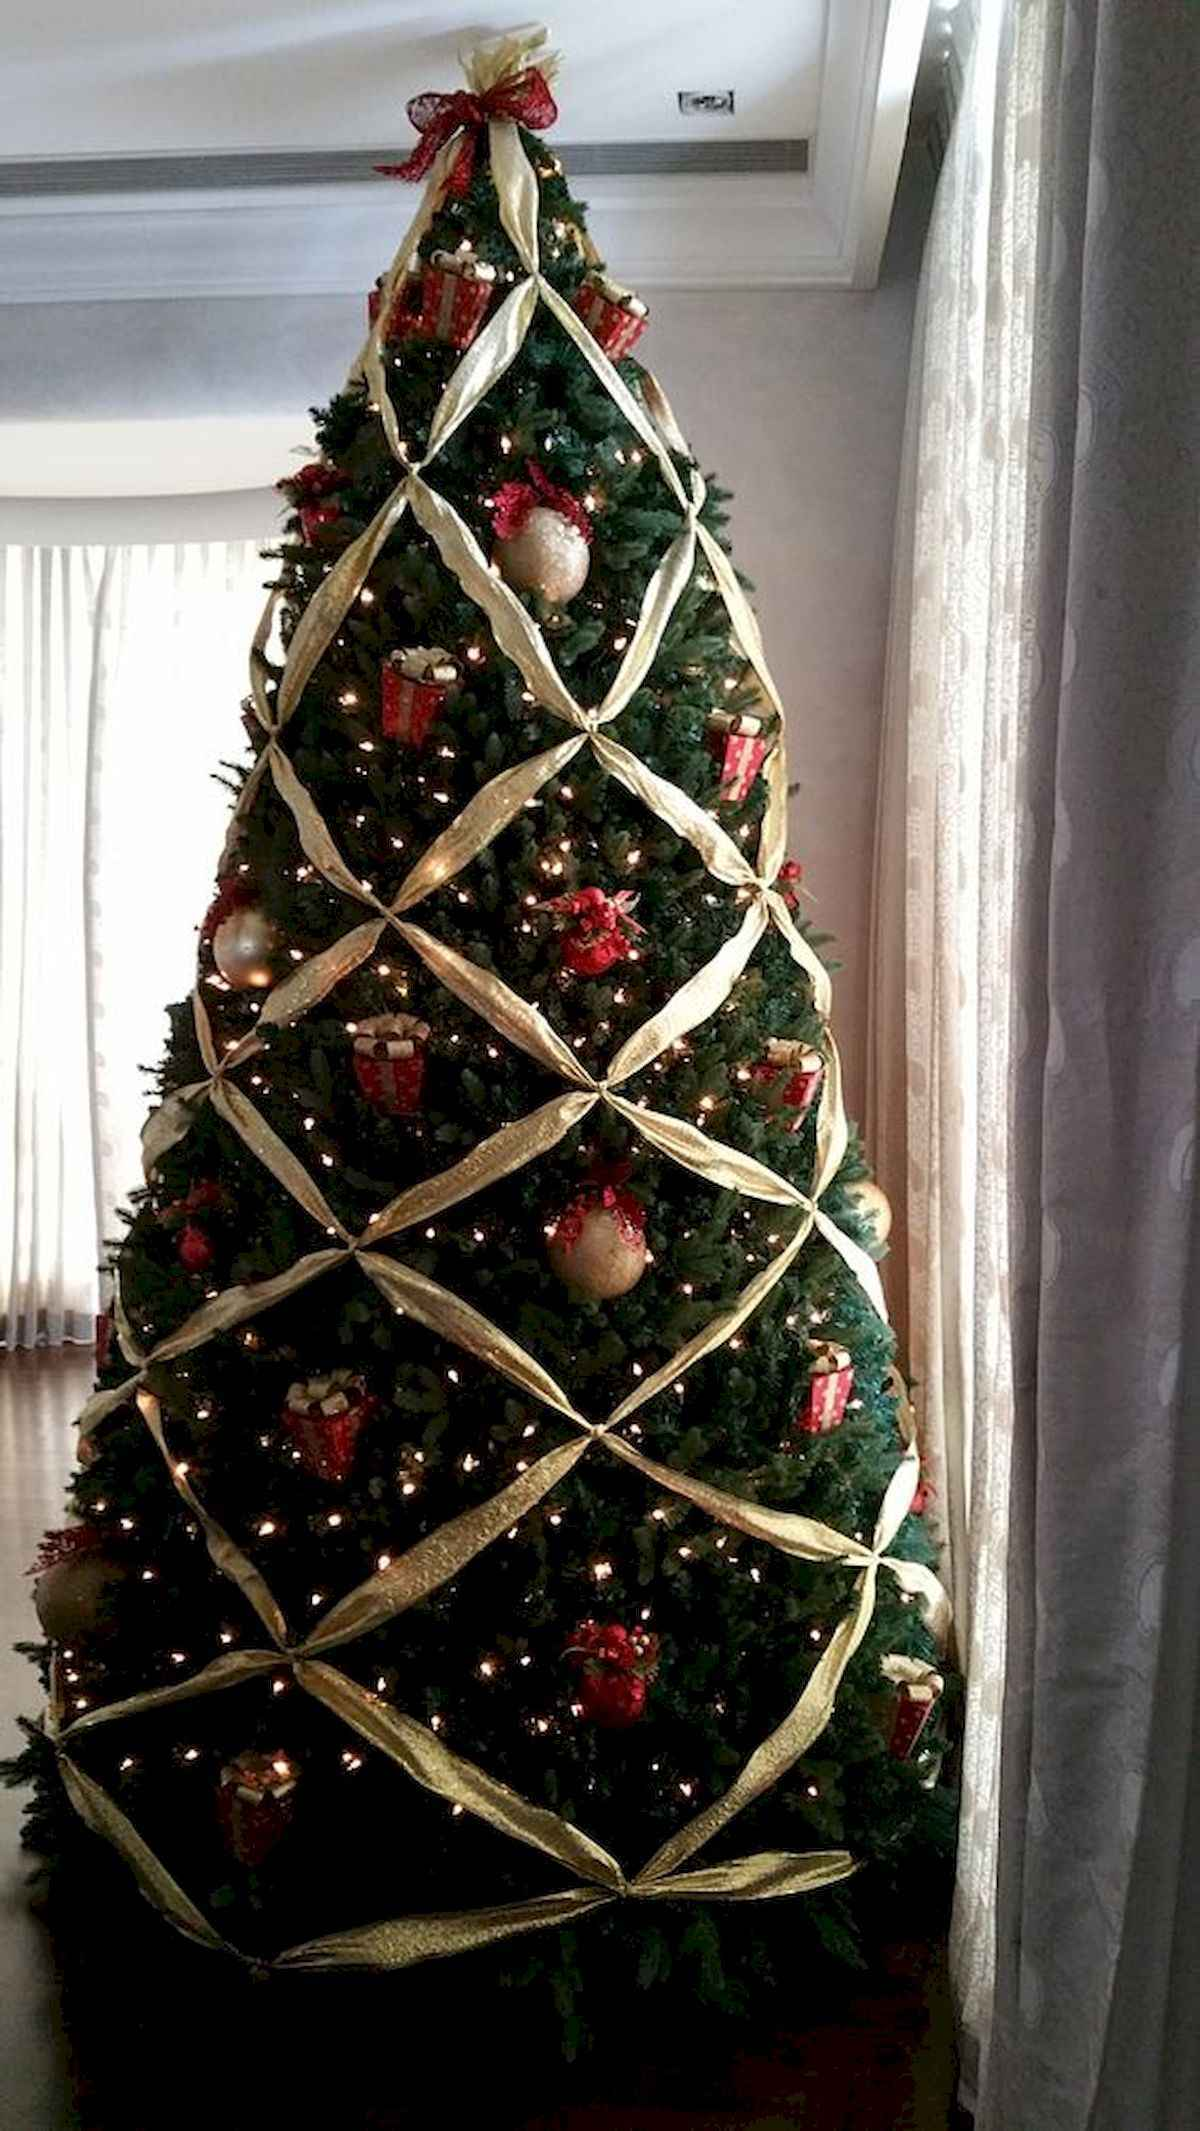 60 awesome christmas tree decorations ideas (36)